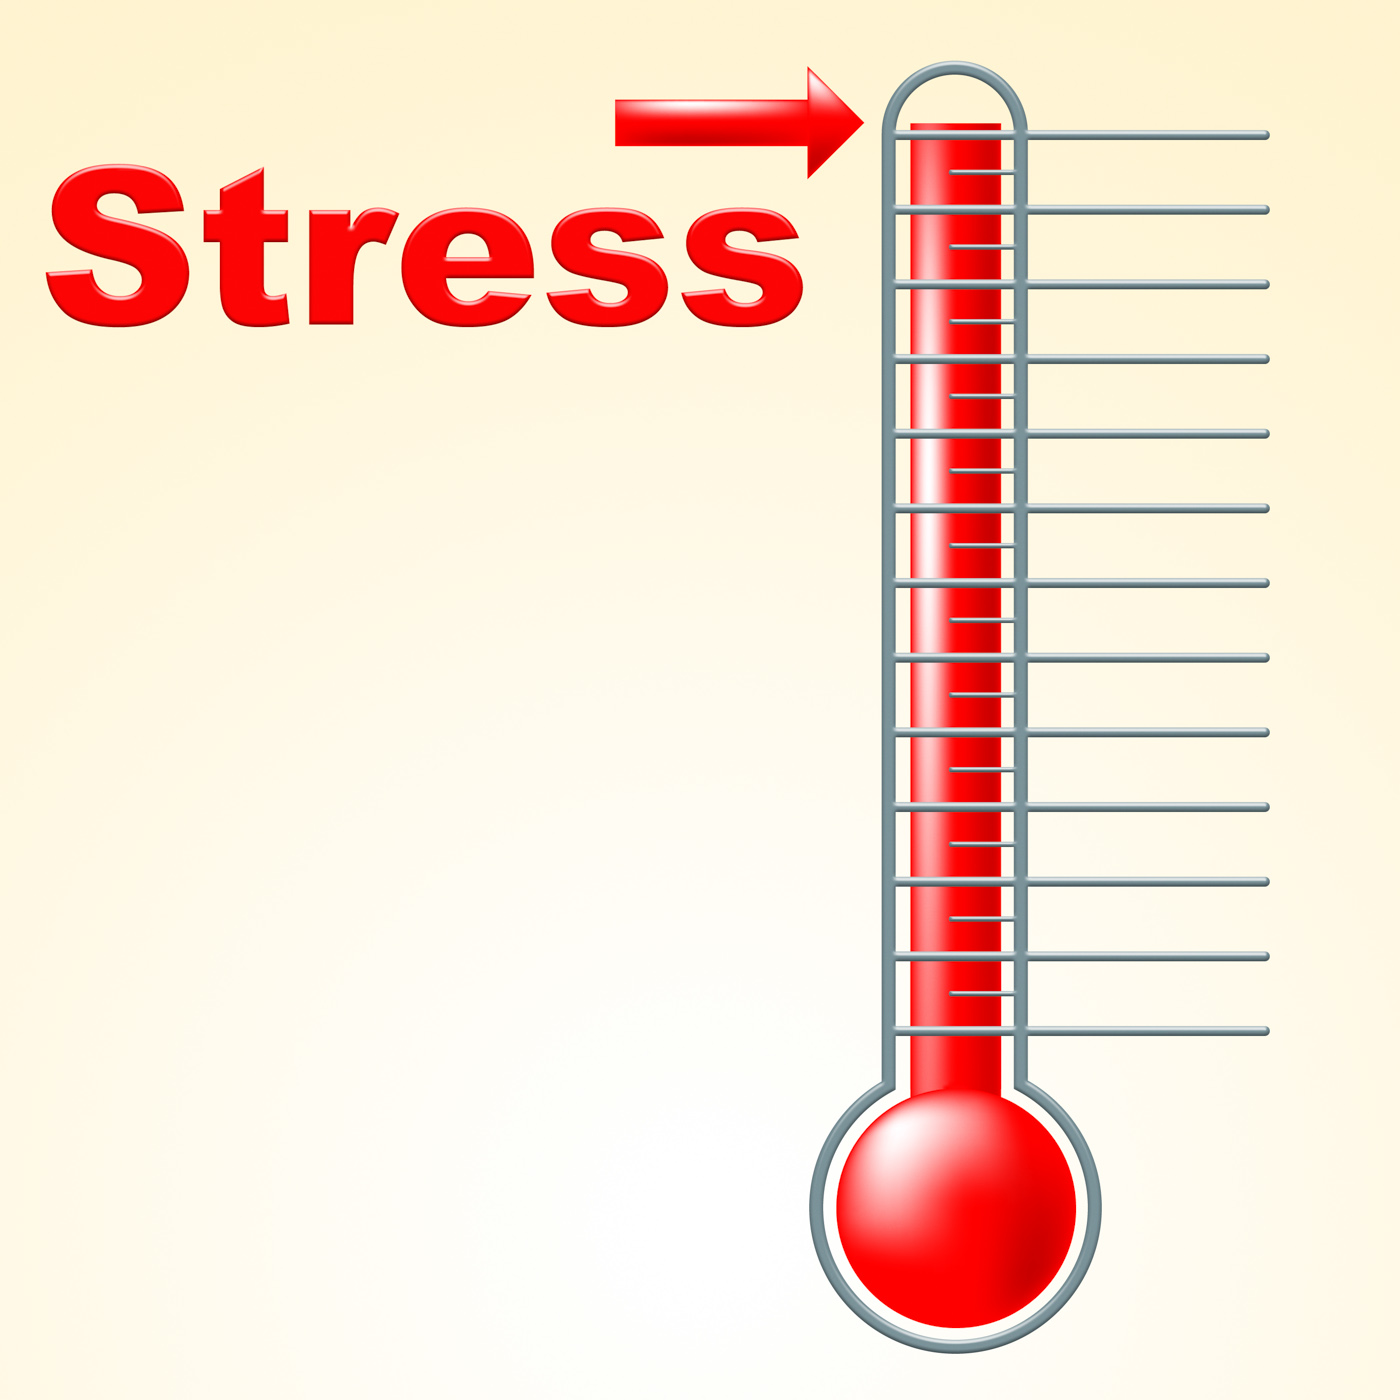 Thermometer Stress Means Tension Celsius And Thermostat, Celsius, Scale, Thermometer, Tension, HQ Photo